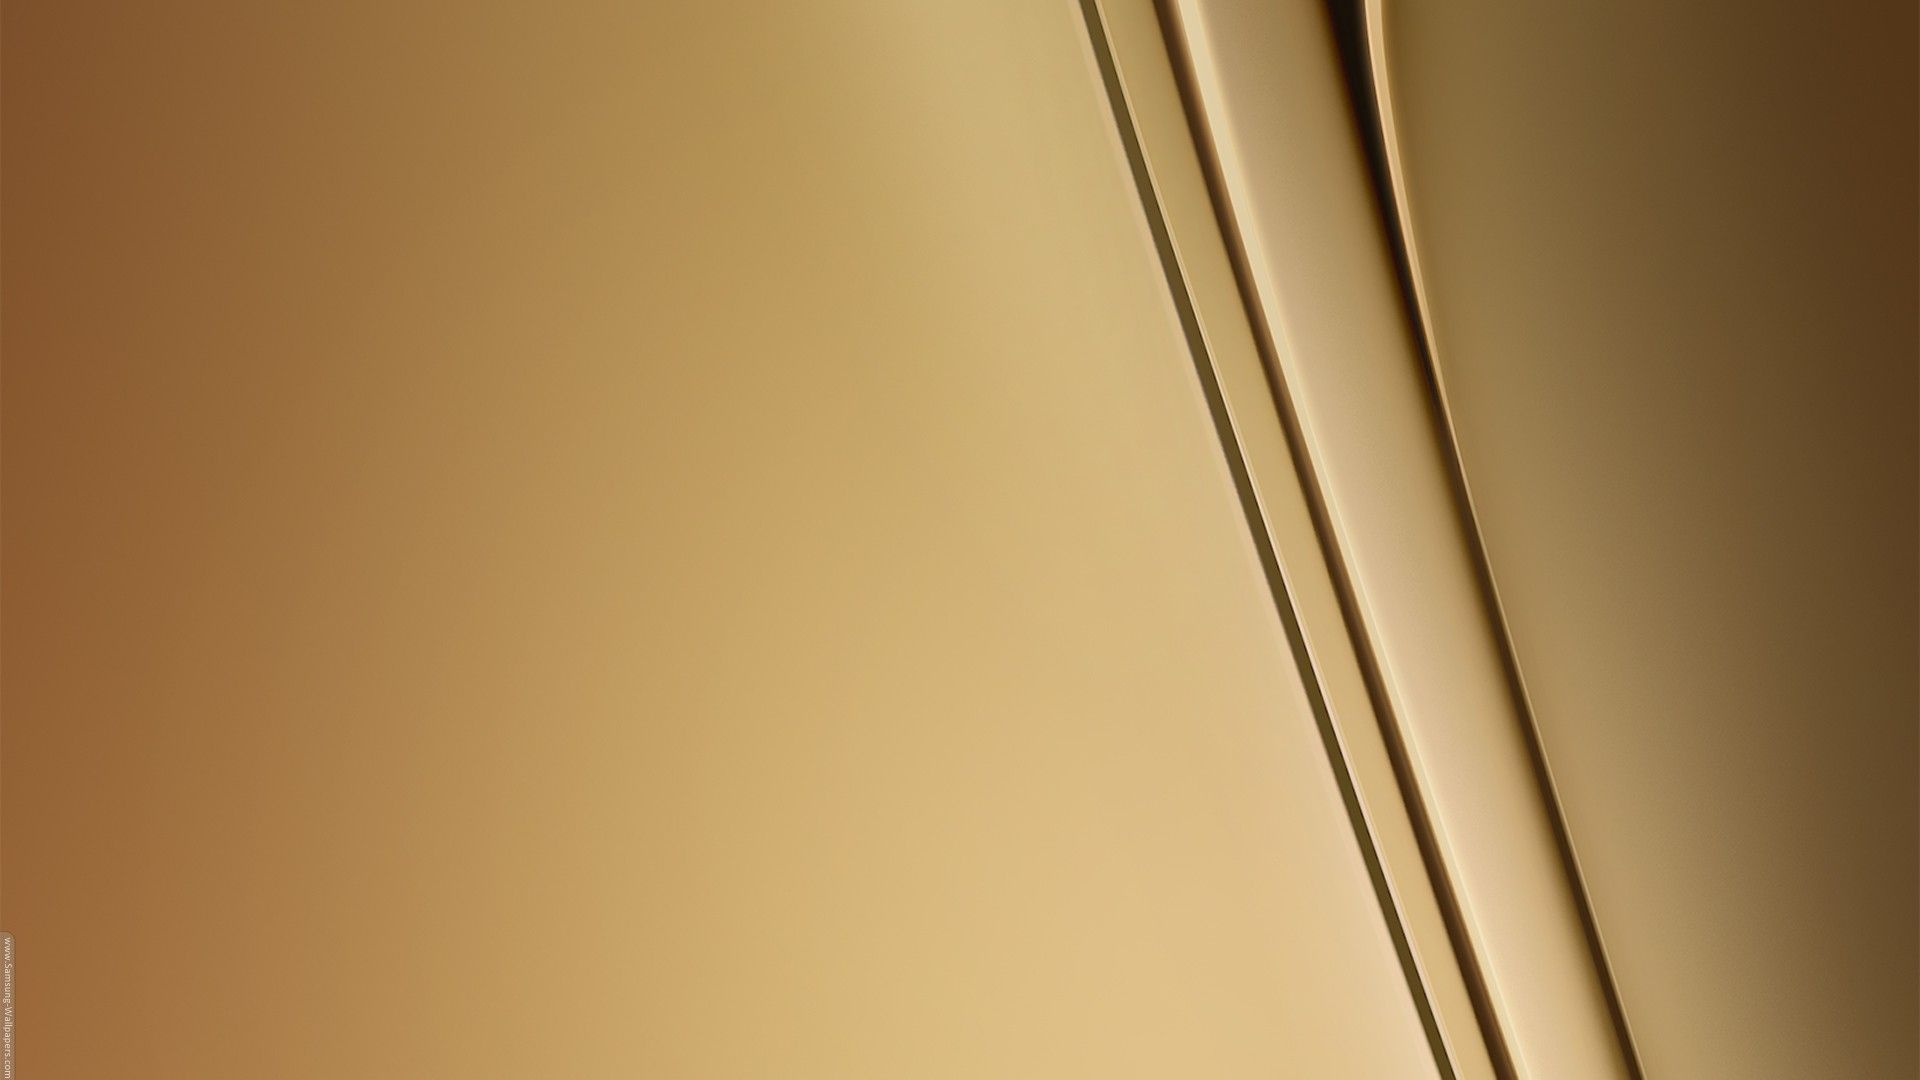 Metallic Gold Wallpaper Metallic Gold Wallpaper Best Hd Wallpapers Wallpaperscute In